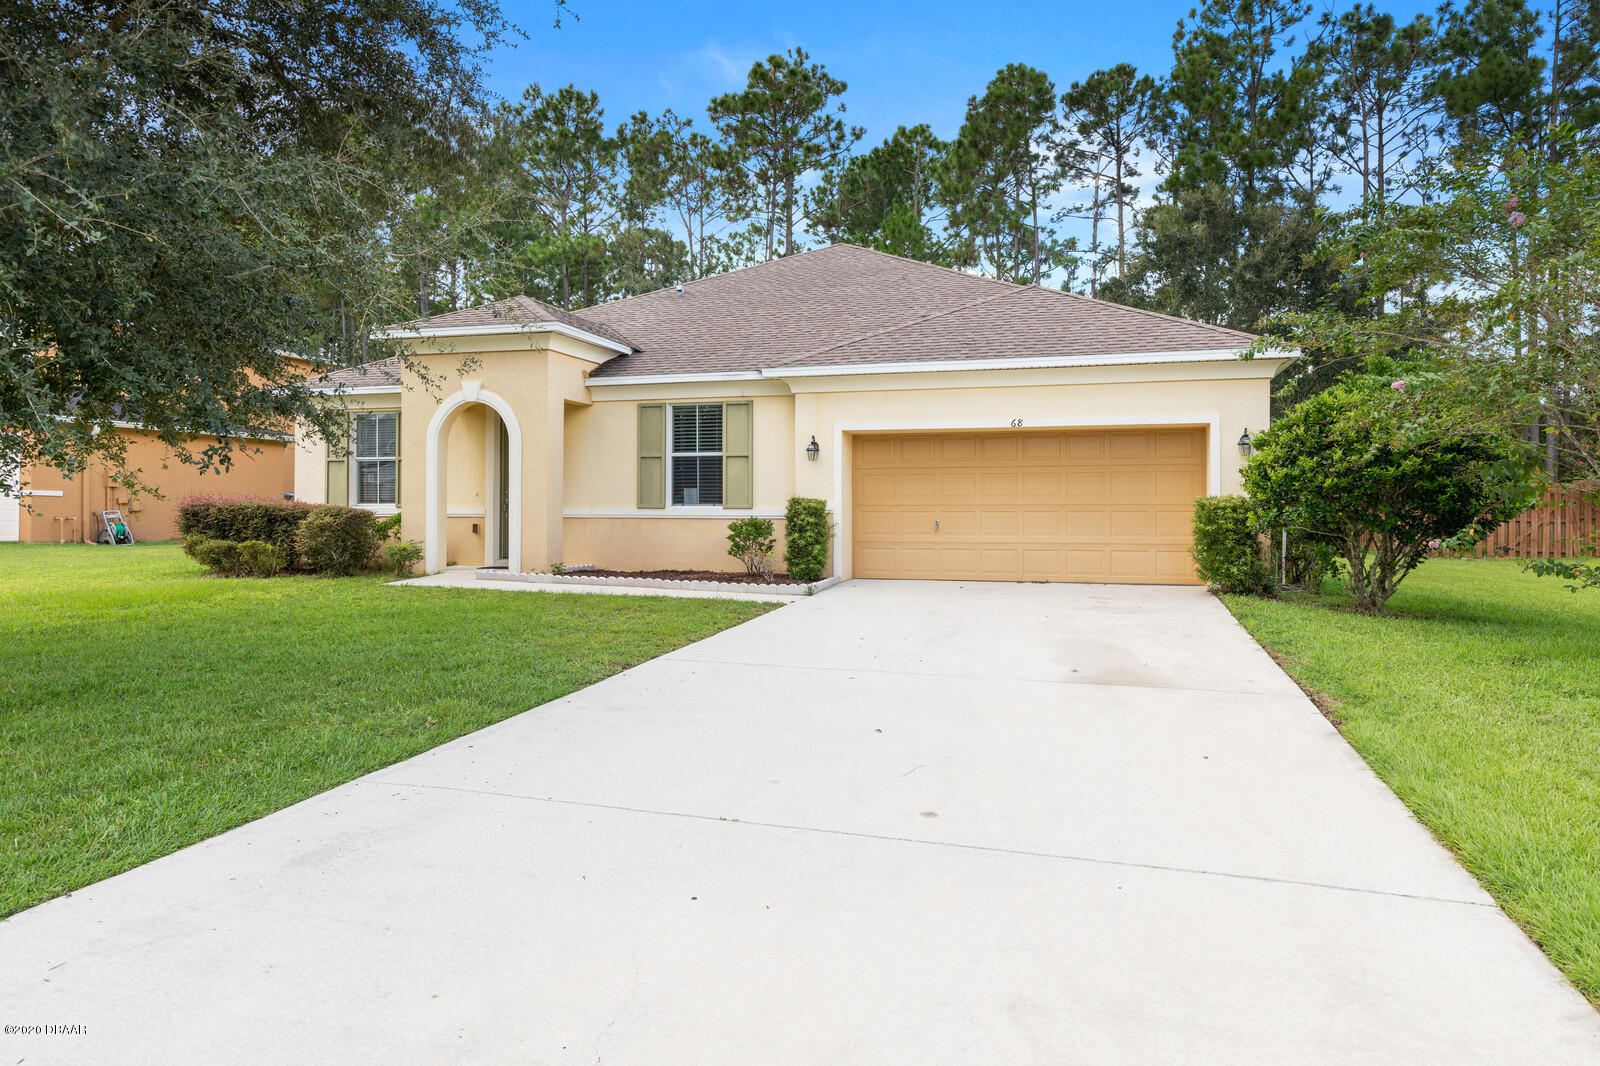 Photo of 68 Rollins Lane, Palm Coast, FL 32164